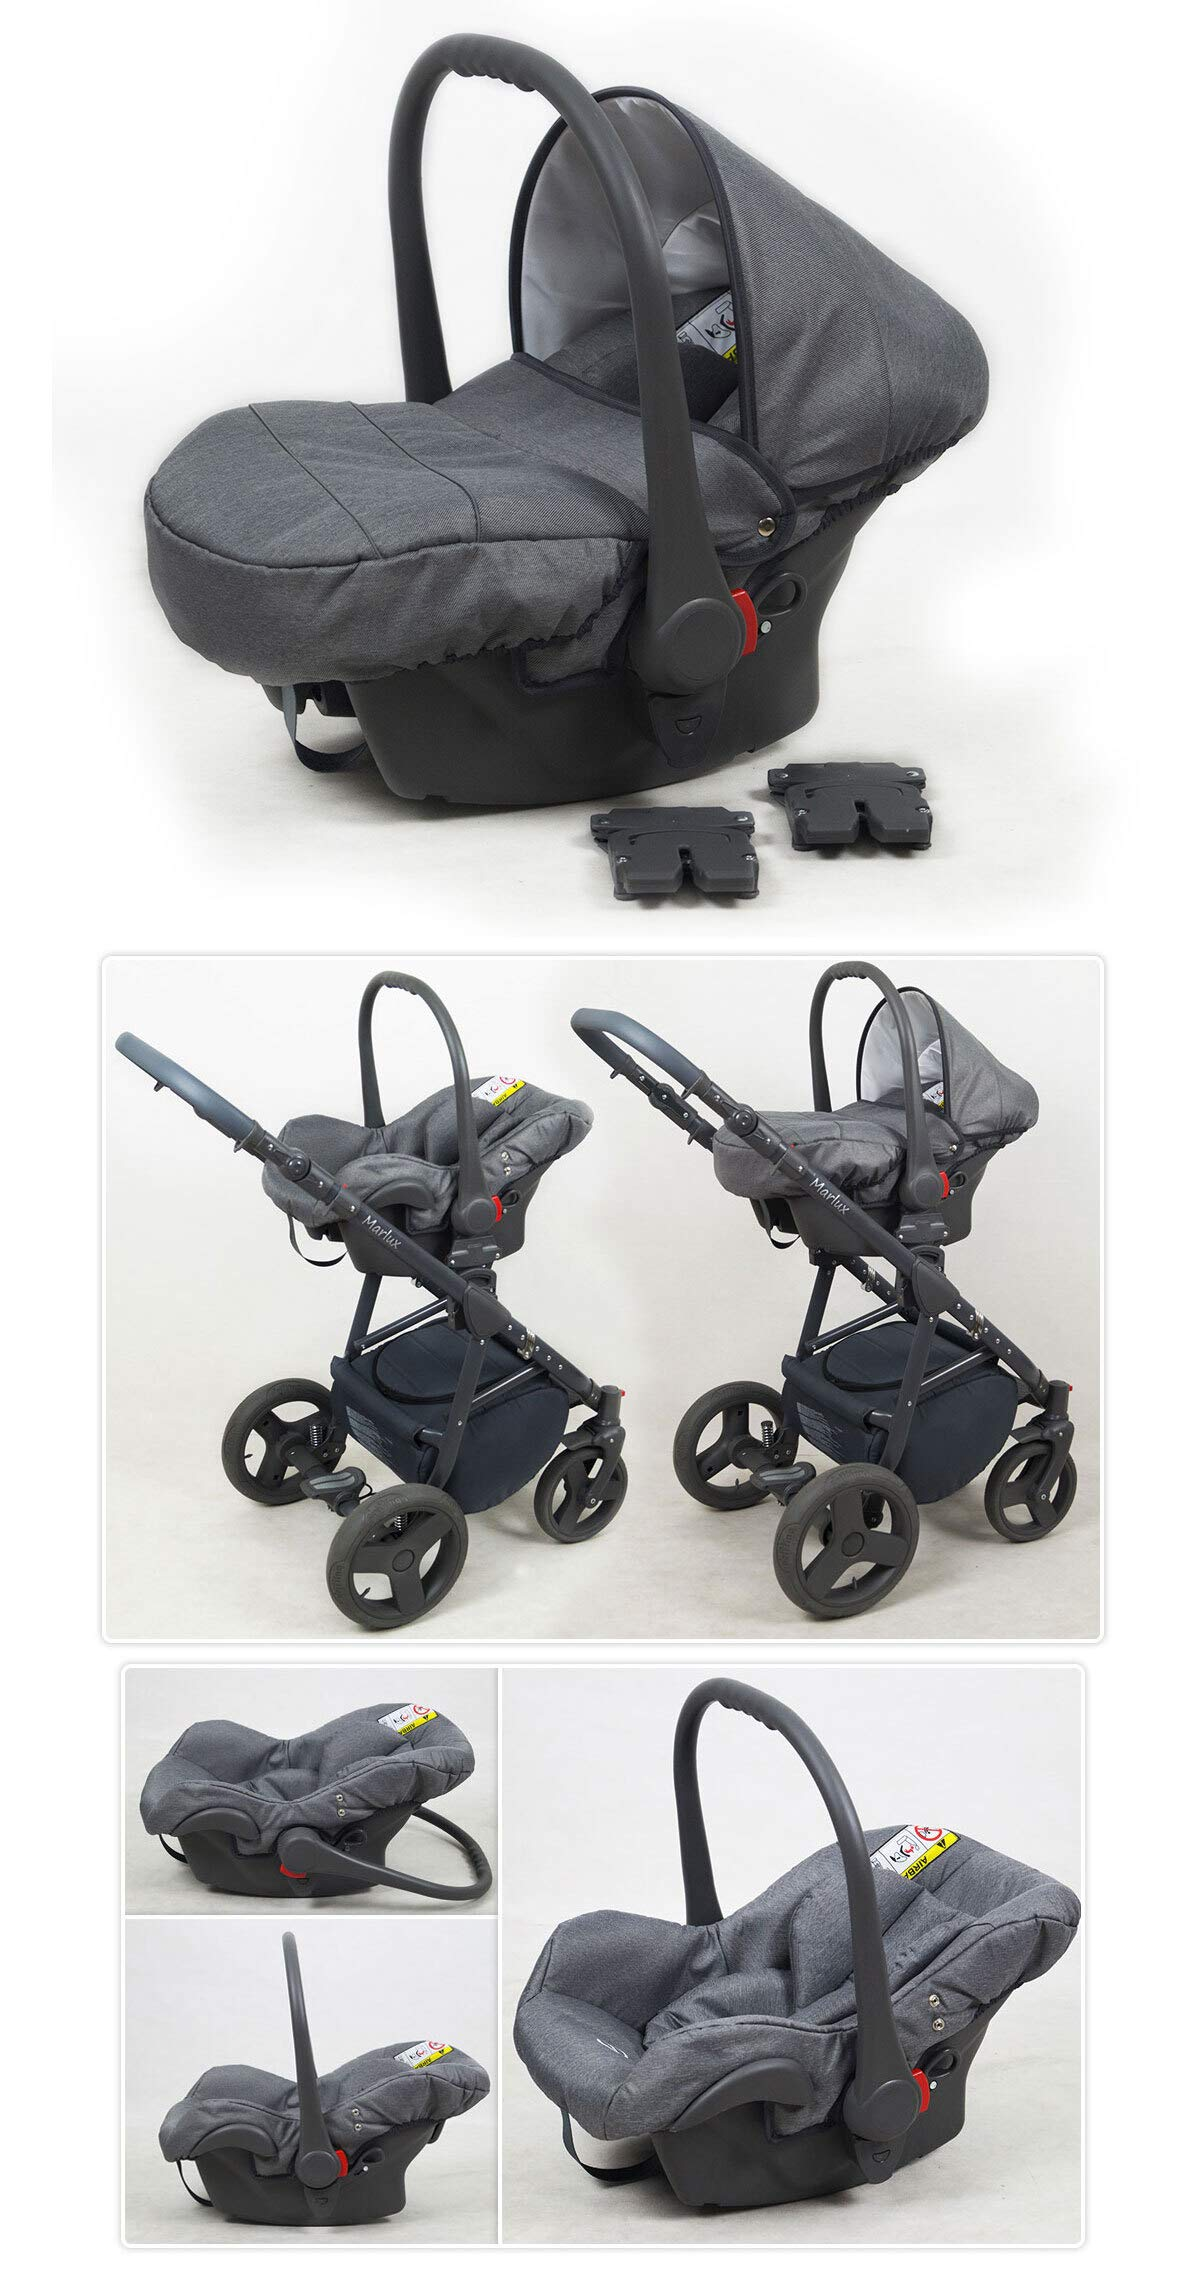 Travel System Stroller Pram Pushchair 2in1 3in1 Set Isofix Marley by SaintBaby Plum 2in1 Without Baby seat SaintBaby 3in1 or 2in1 Selectable. At 3in1 you will also receive the car seat (baby seat). Of course you get the baby tub (classic pram) as well as the buggy attachment (sports seat) no matter if 2in1 or 3in1. The car naturally complies with the EU safety standard EN1888. During production and before shipment, each wagon is carefully inspected so that you can be sure you have one of the best wagons. Saintbaby stands for all-in-one carefree packages, so you will also receive a diaper bag in the same colour as the car as well as rain and insect protection free of charge. With all the colours of this pram you will find the pram of your dreams. 3